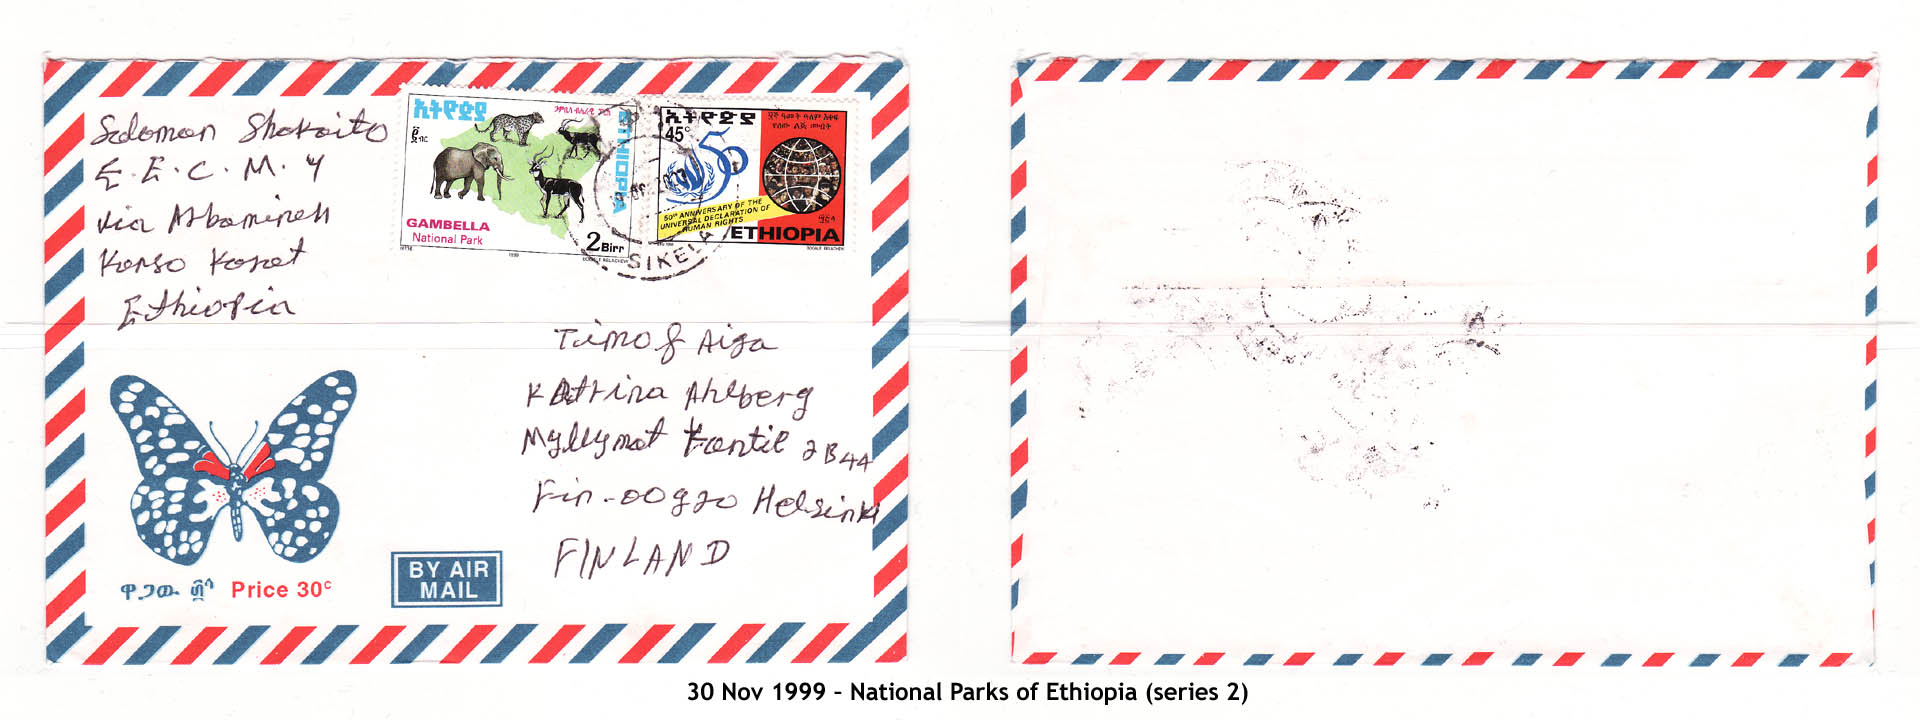 19991130 – National Parks of Ethiopia (series 2)